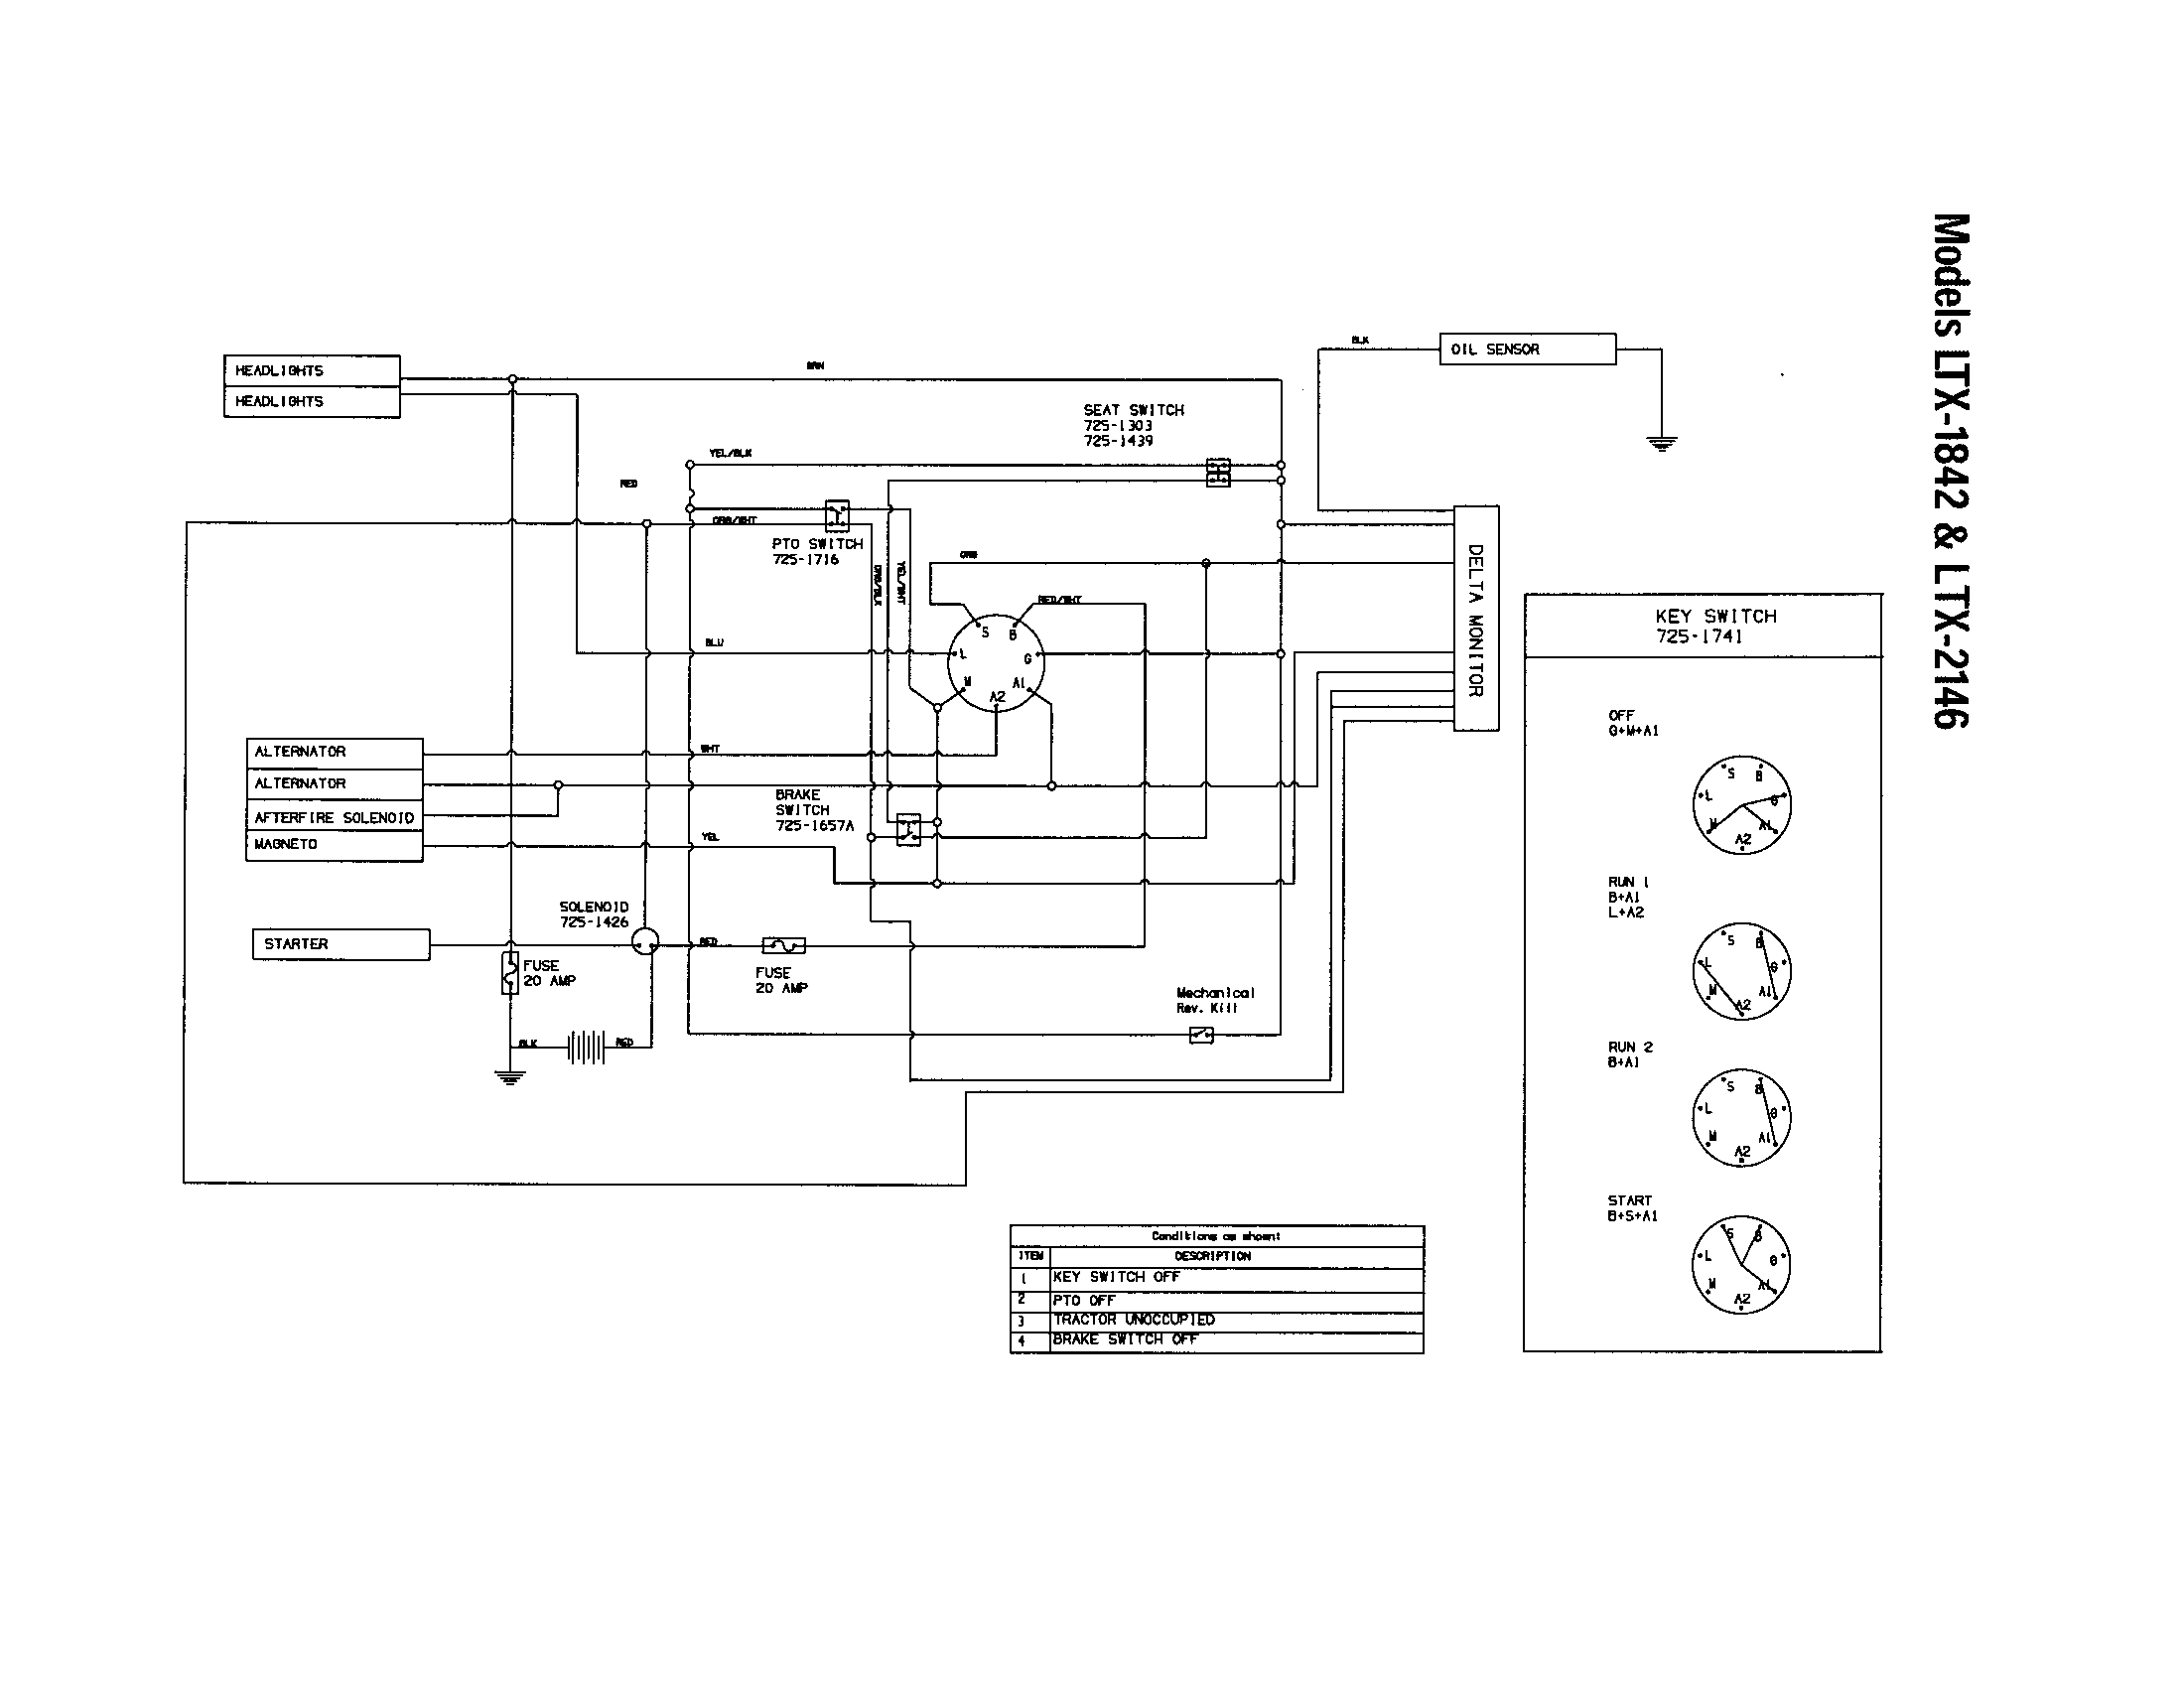 model wiring diagram wiring diagram diagram parts list for model 13ap609g063 troybilt wiring diagram diagram parts list for model